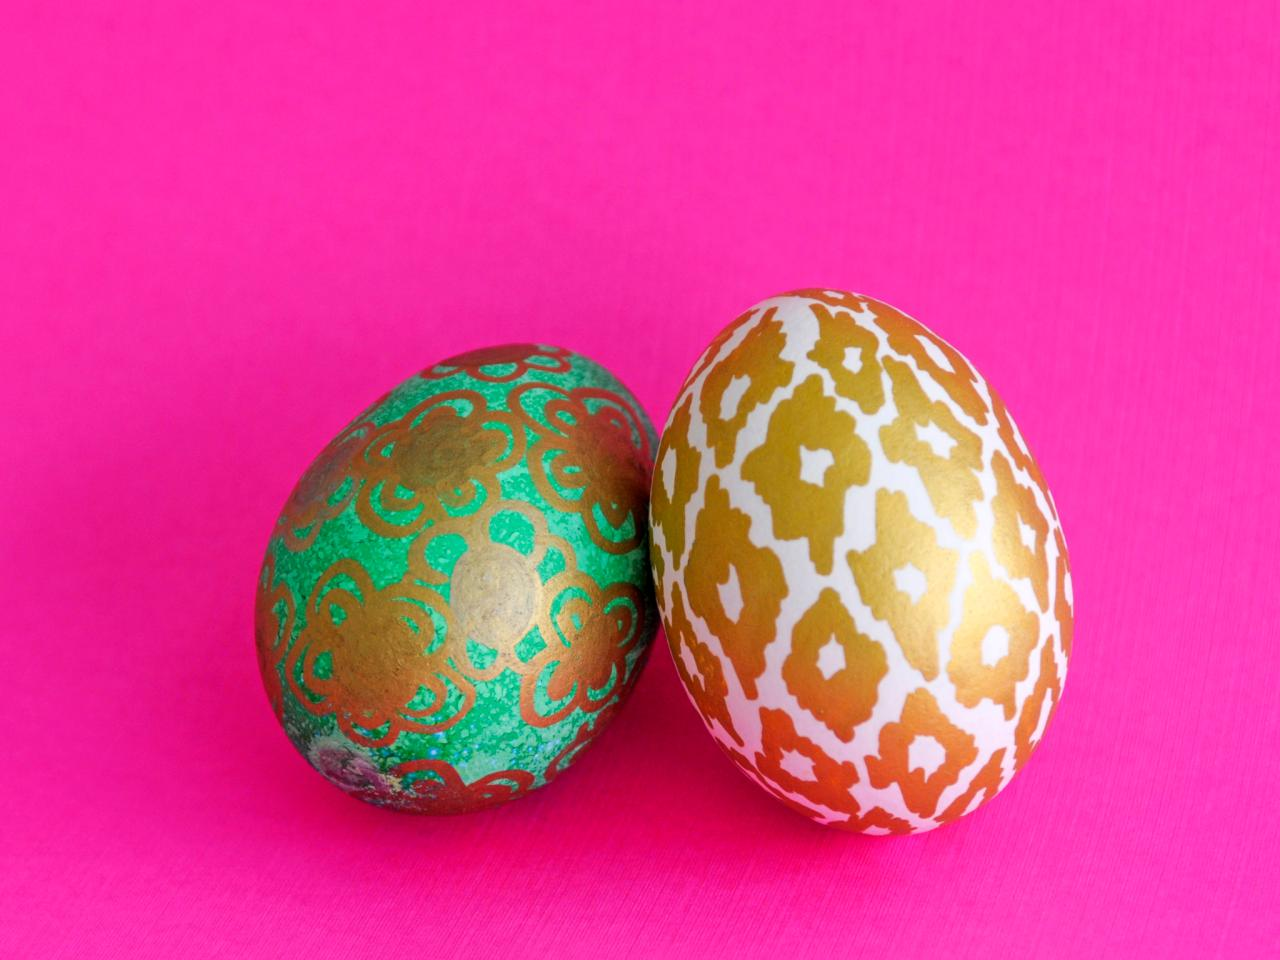 15 Easter Egg Decorating Ideas That Go Beyond Dye